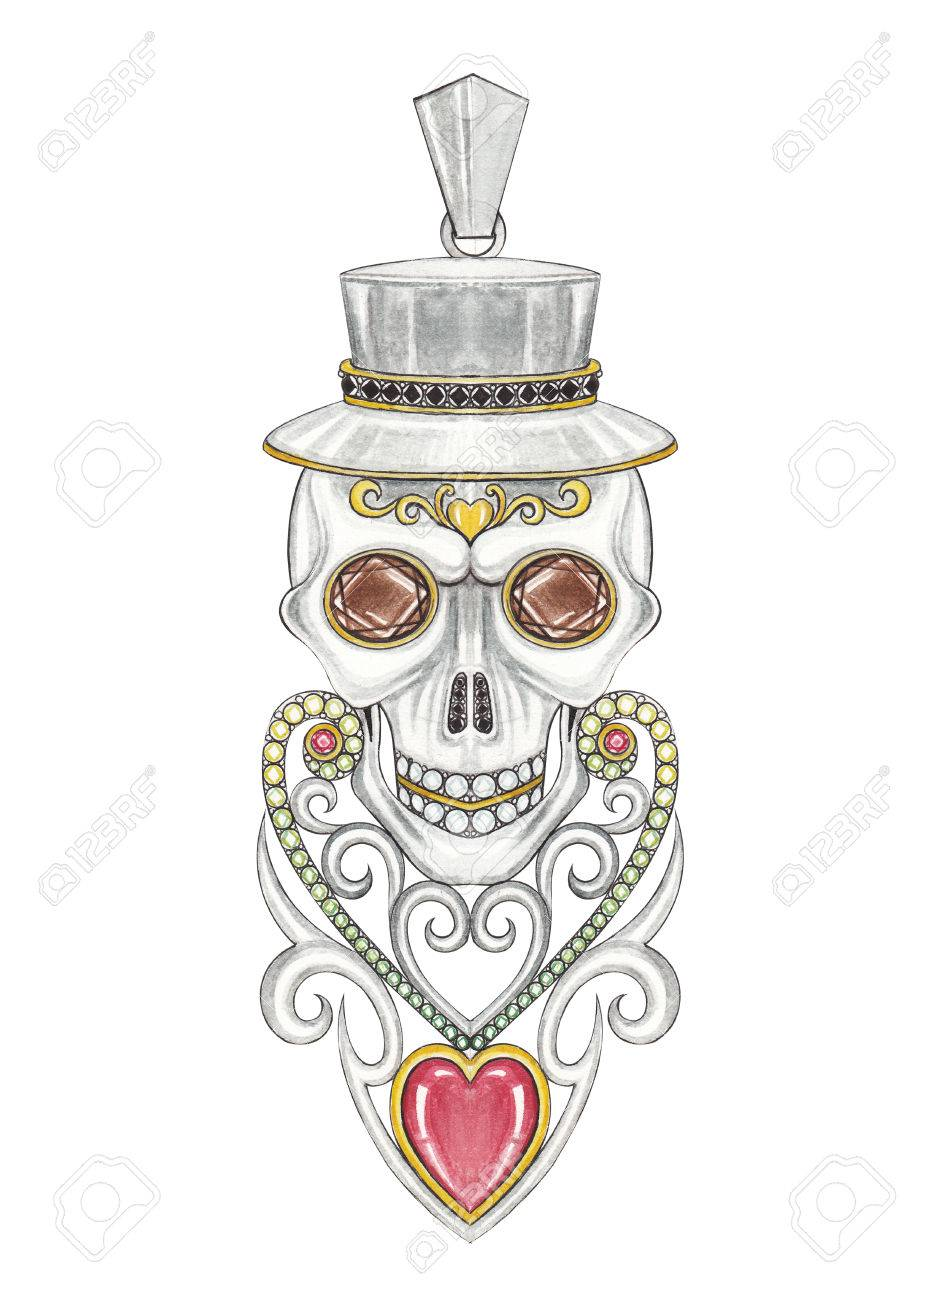 Jewelry Design Heart Vintage Mix Skull Pendant Hand Drawing